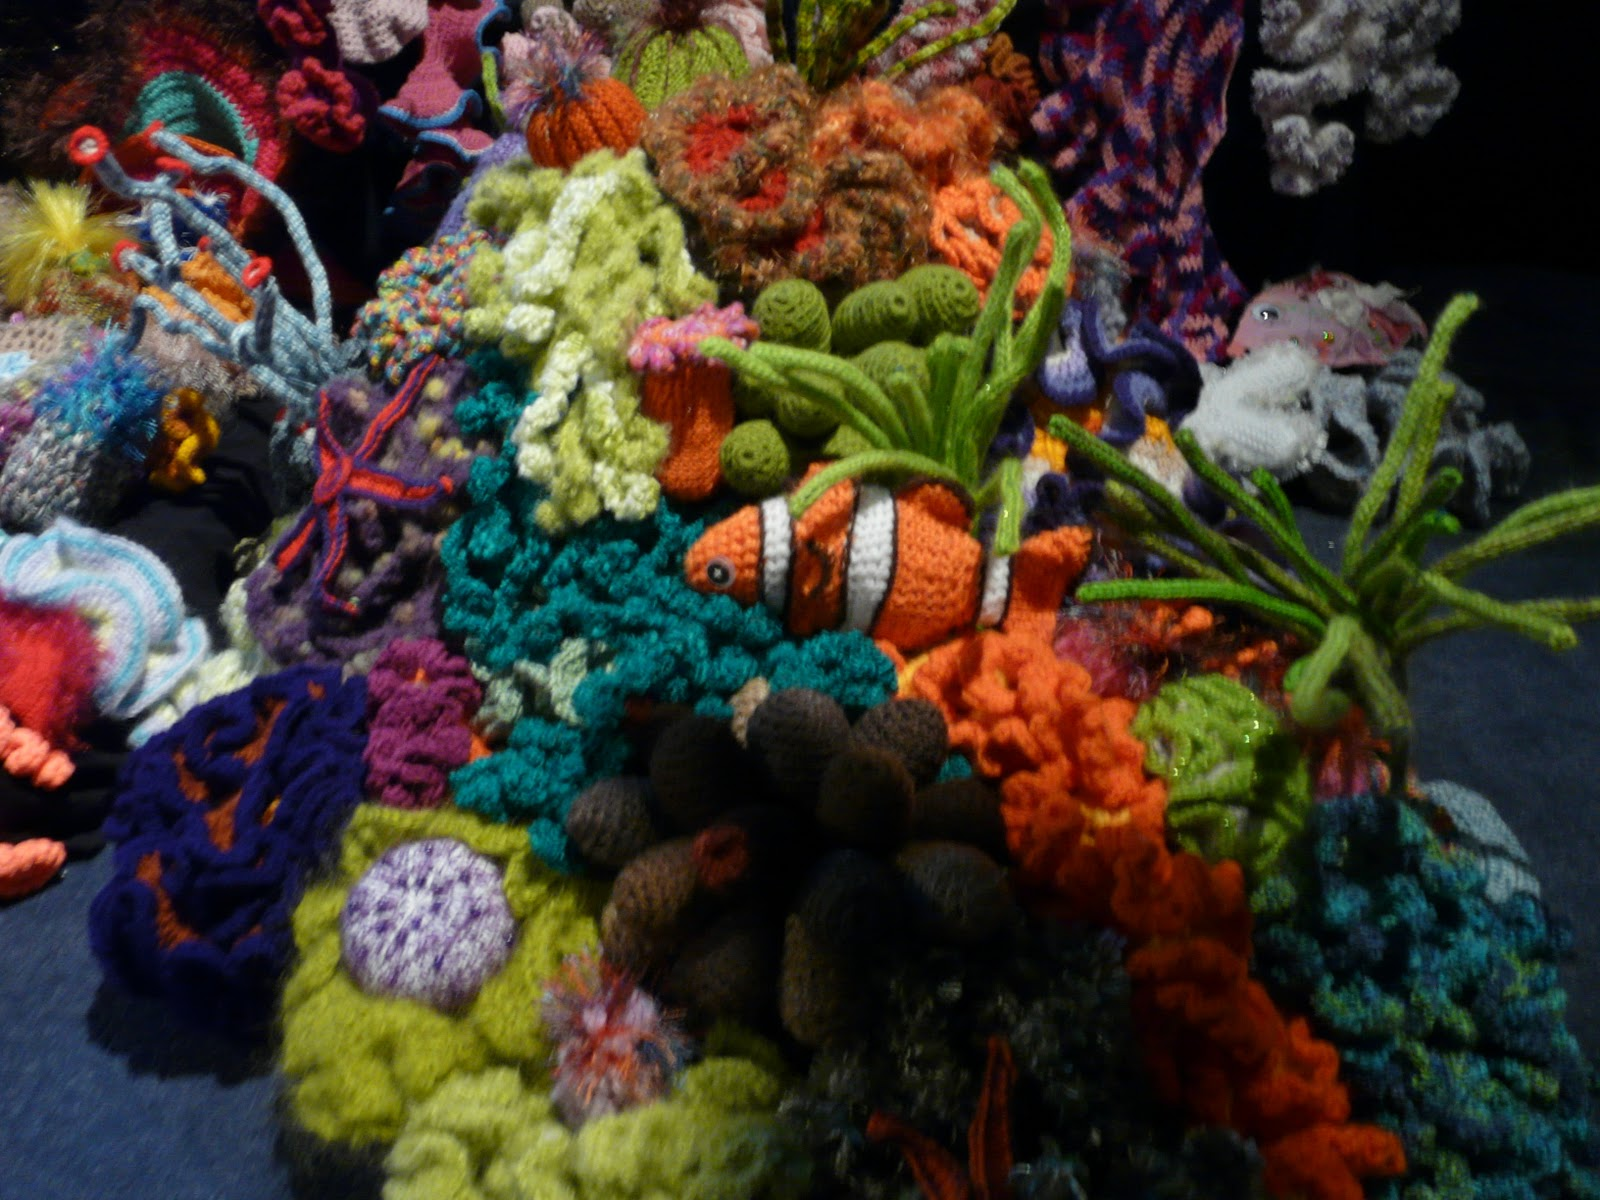 Crochet Coral Reef : The Land of Melting Shadows: Crochet Coral Reef